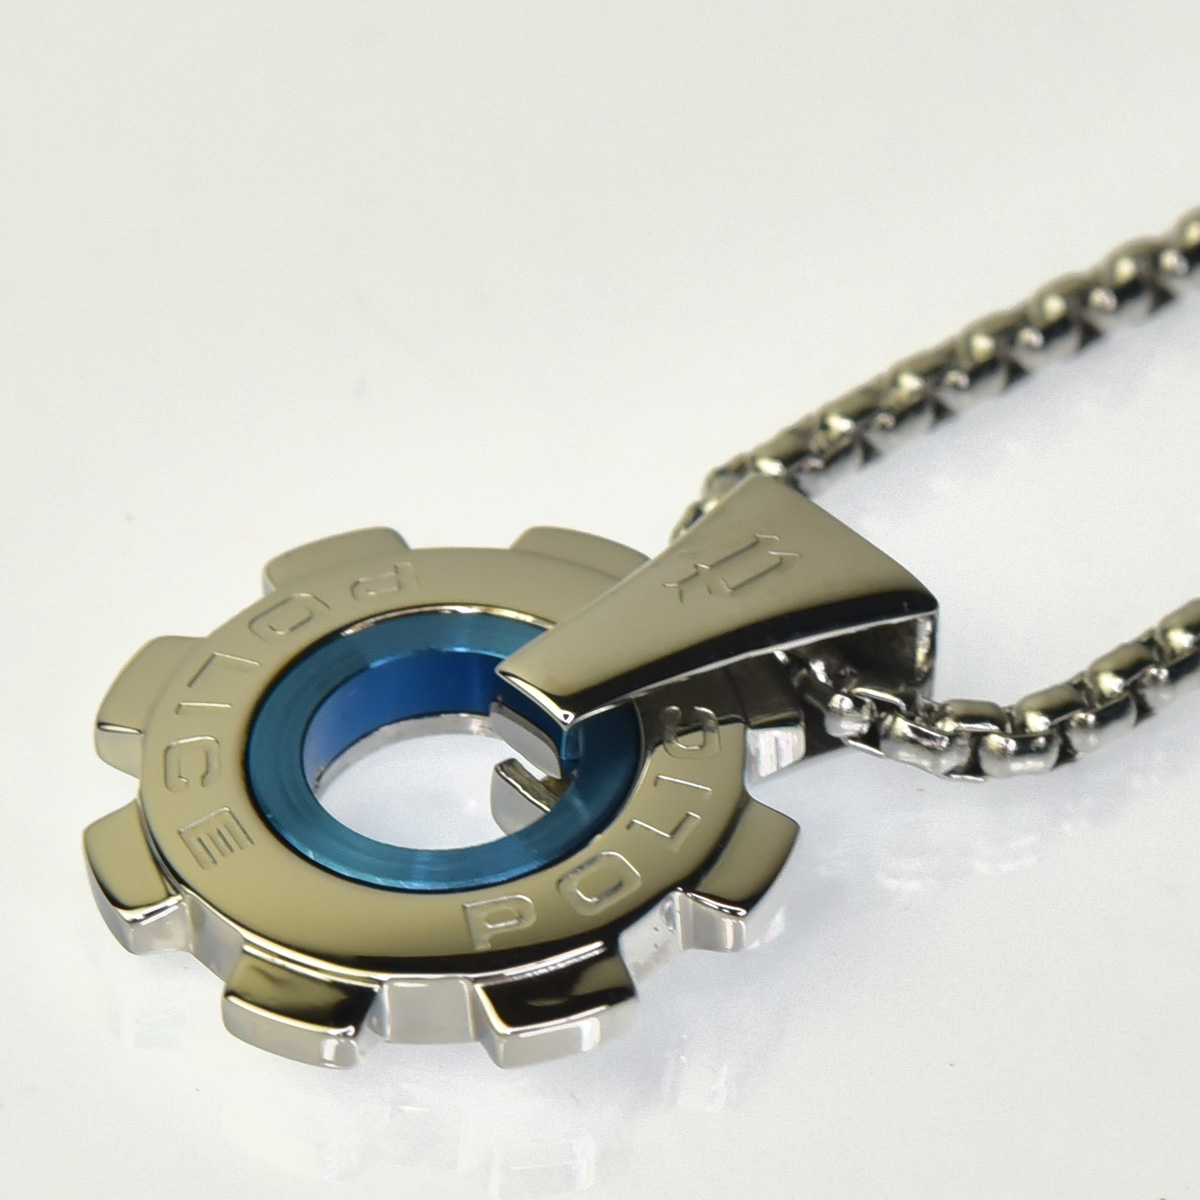 http://www.police.ne.jp/images/police_necklace_reactor_pea_02.jpg